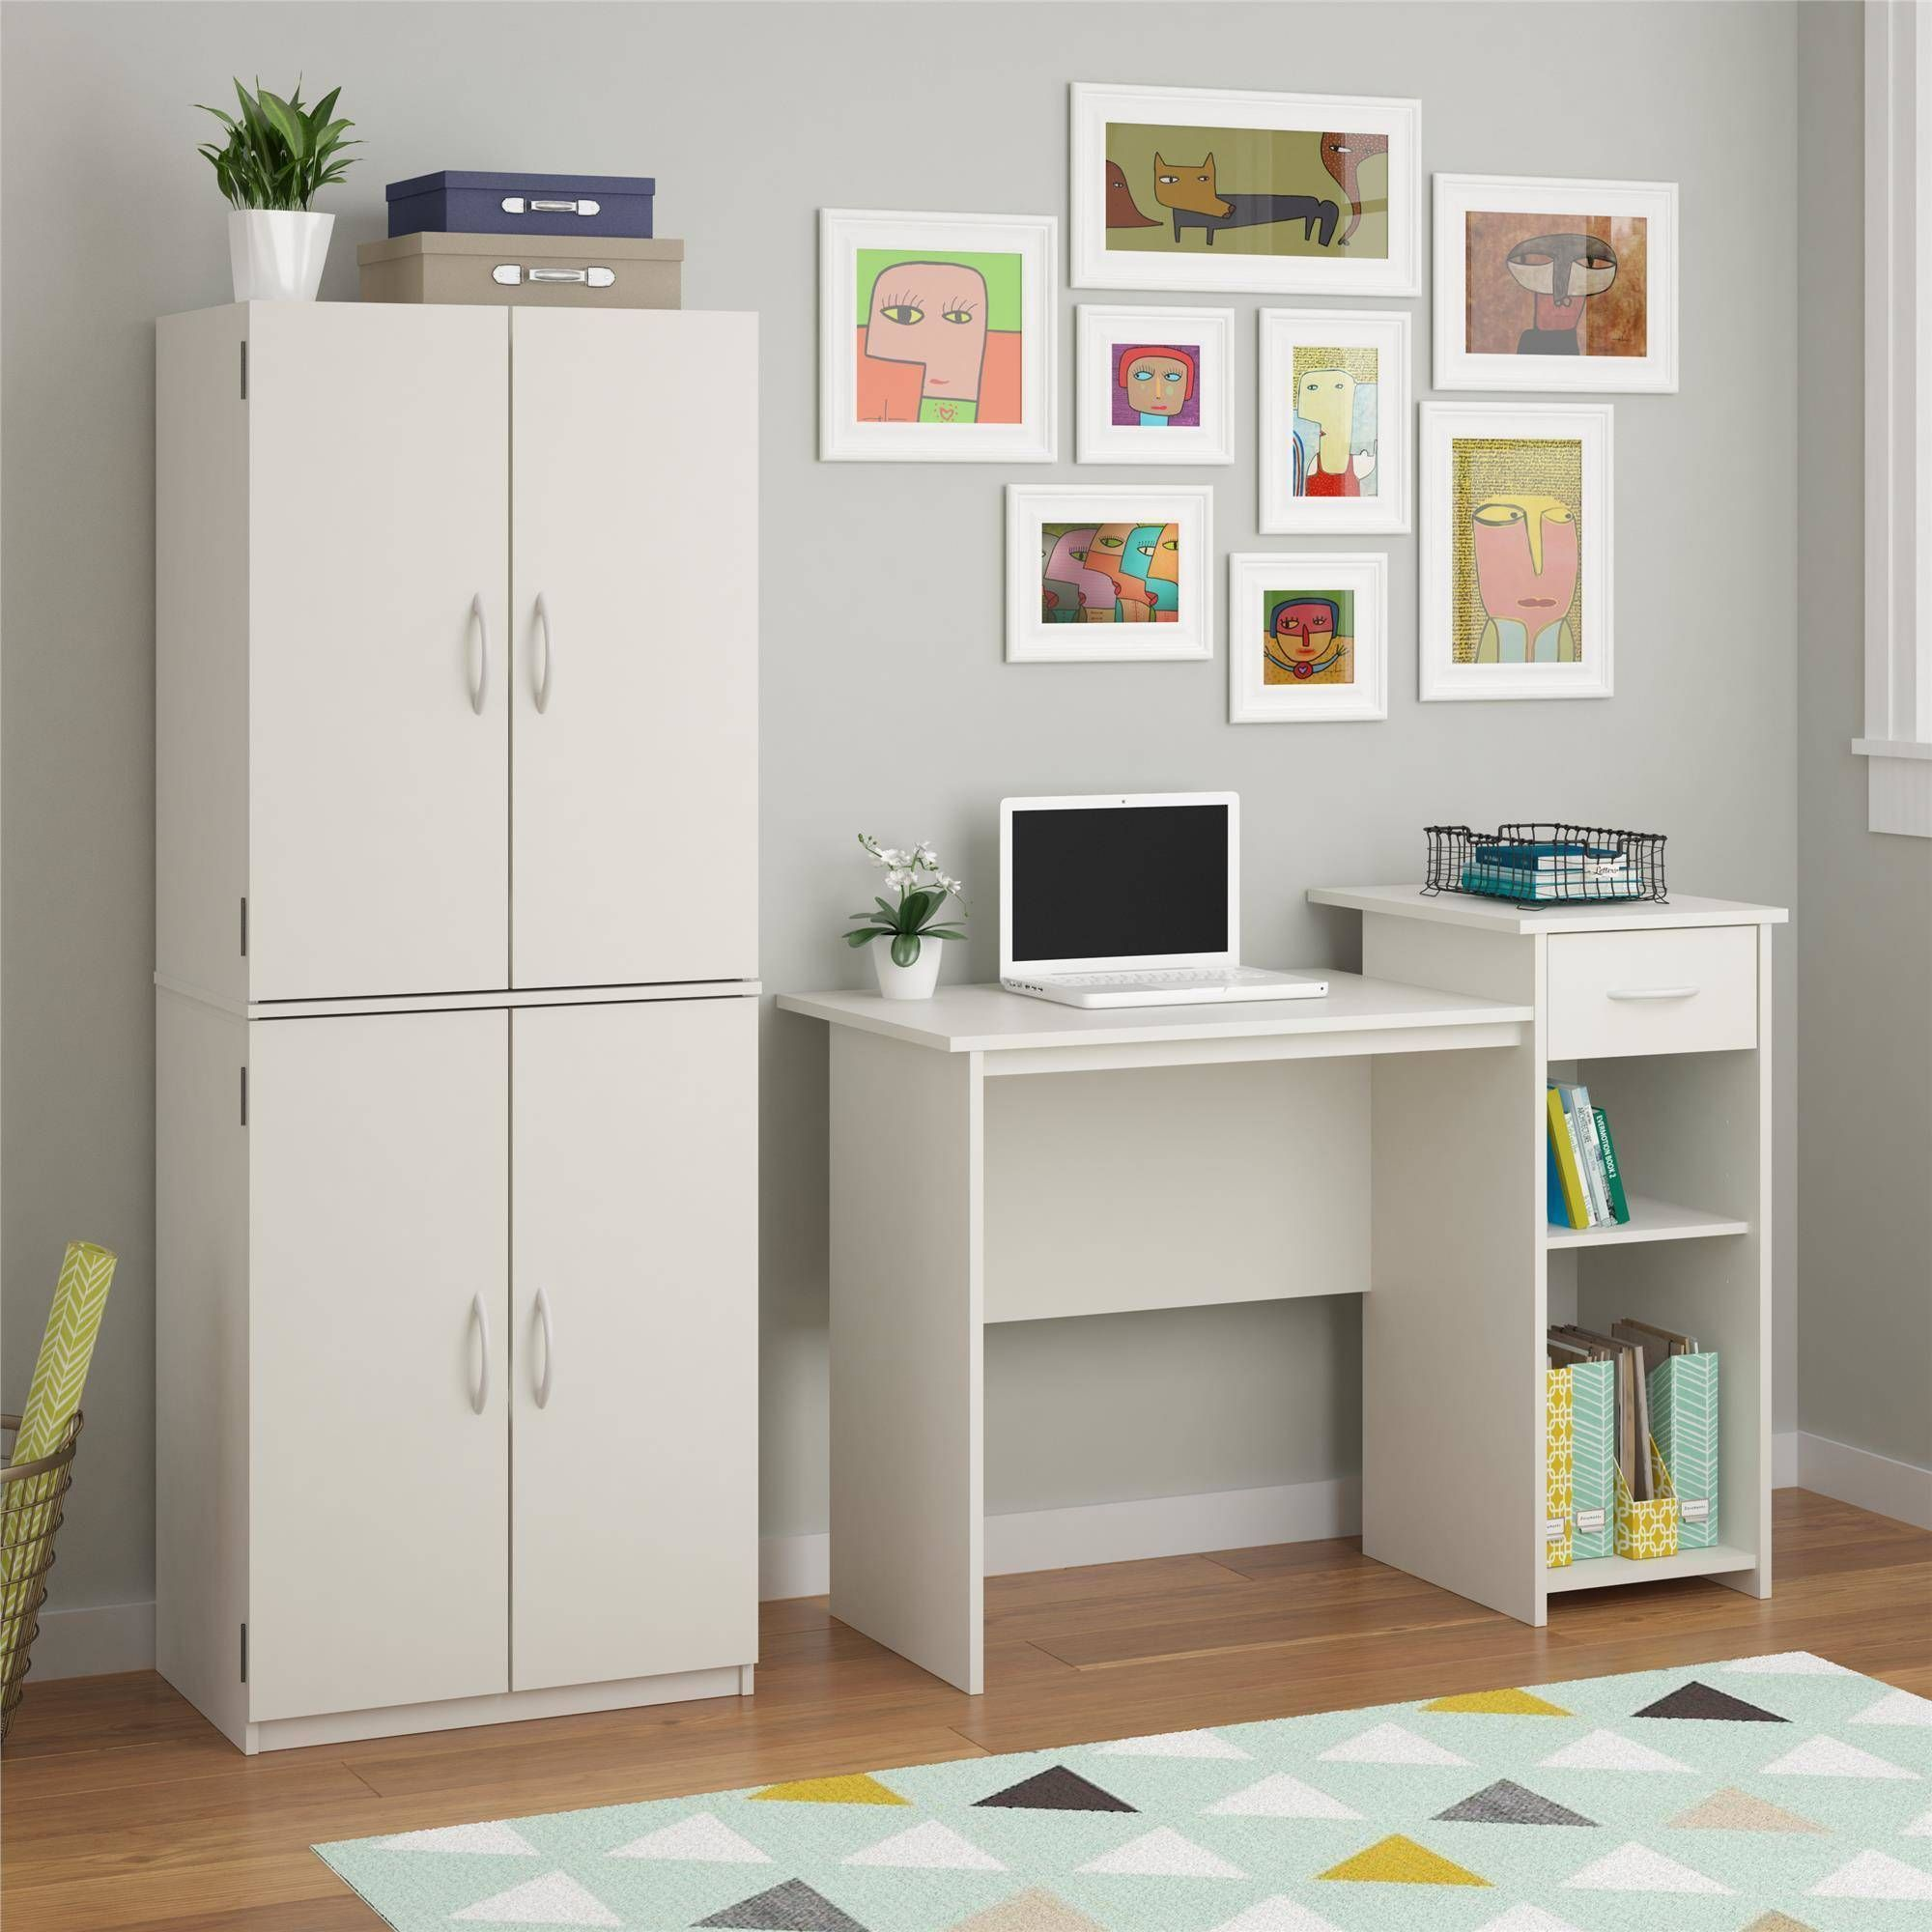 Mainstays Student Desk Multiple Finishes Student Desk For Bedroom Easy Glide Accessory Drawer Mainstays Desk With Adjustable Shelf Tall Cabinet Storage Pantry Storage Cabinet Kitchen Pantry Storage Cabinet